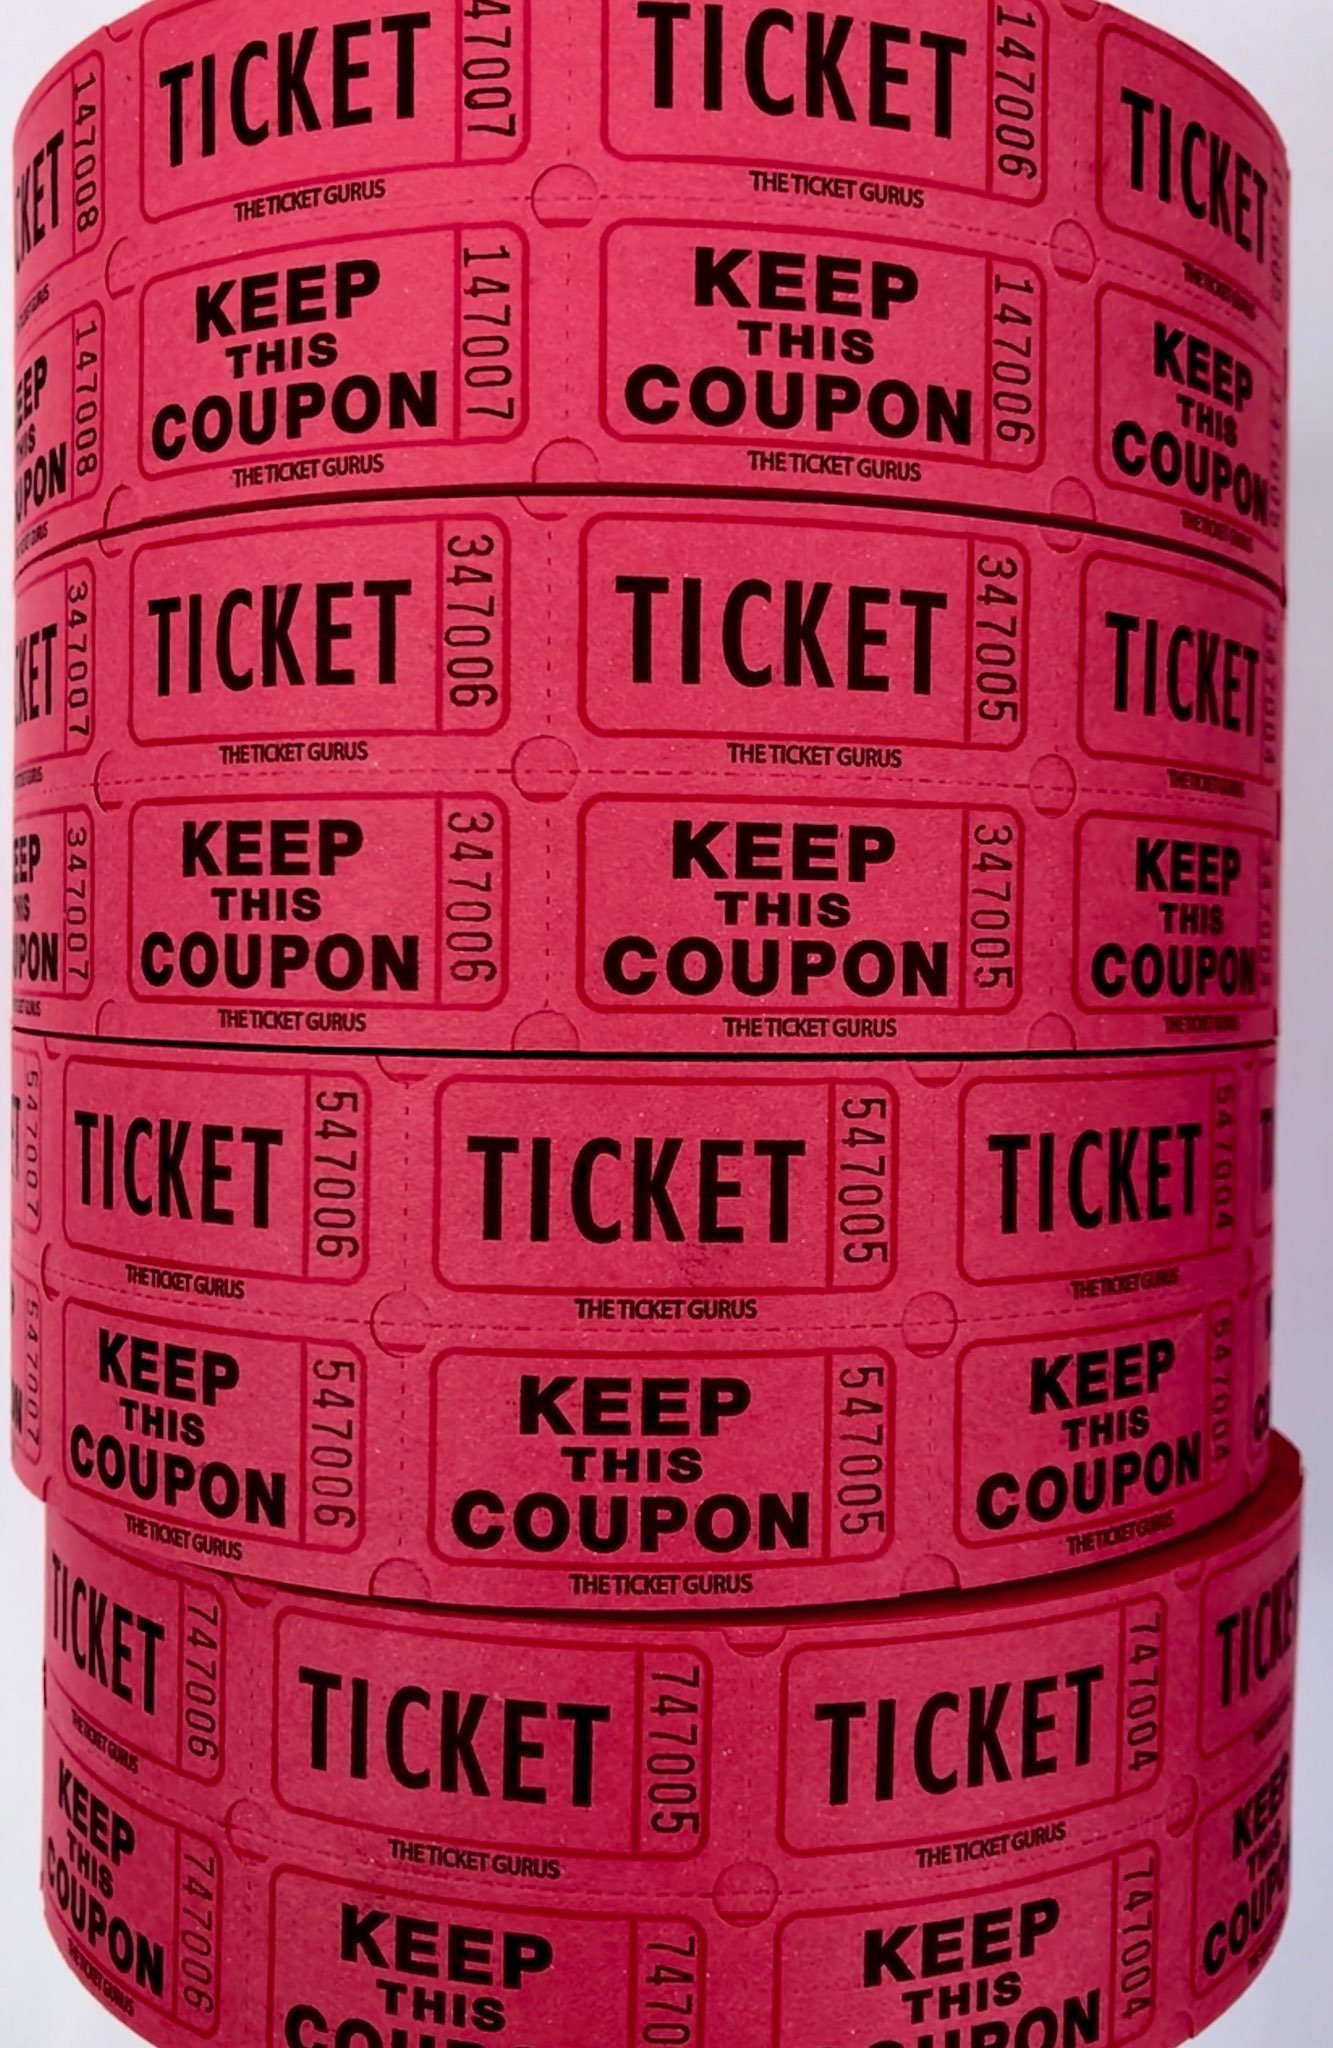 The Ticket Gurus-Raffle Tickets - (4 Rolls of 2000 Double Tickets) 8,000 Total 50/50 Raffle Tickets-(4) RED Rolls by The Ticket Gurus